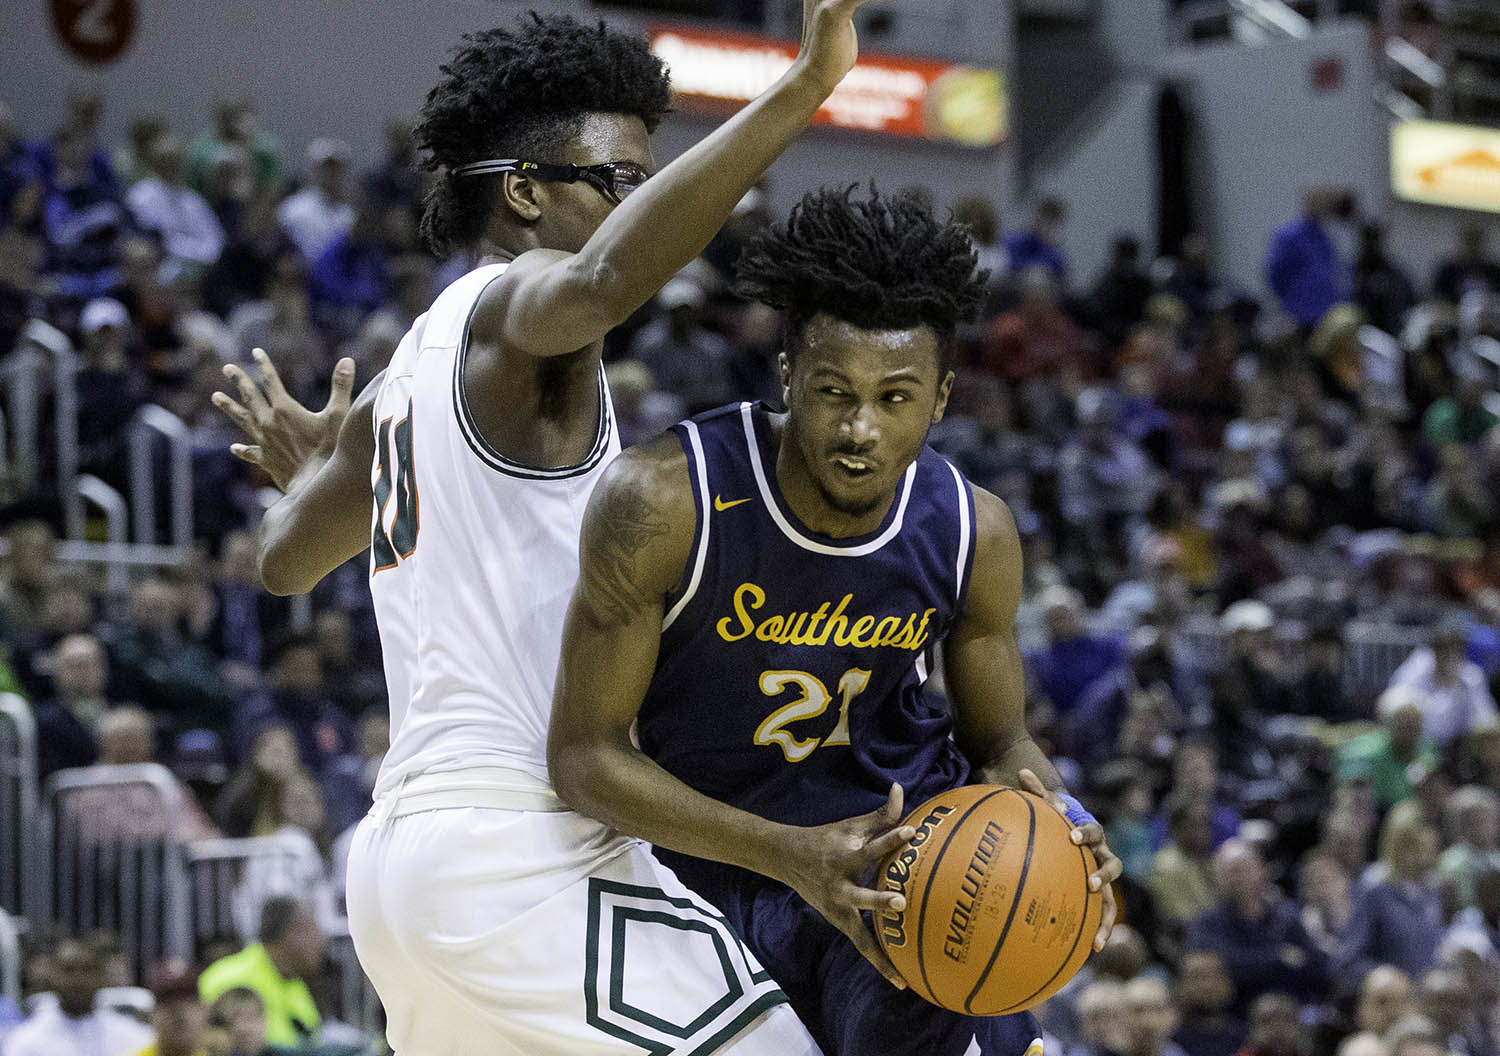 Southeast's Anthony Fairlee drives into Morgan Park's Tamell Pearson during the 3A championship game at Carver Arena in Peoria, Ill., Saturday, March 17, 2018. [Ted Schurter/The State Journal-Register]